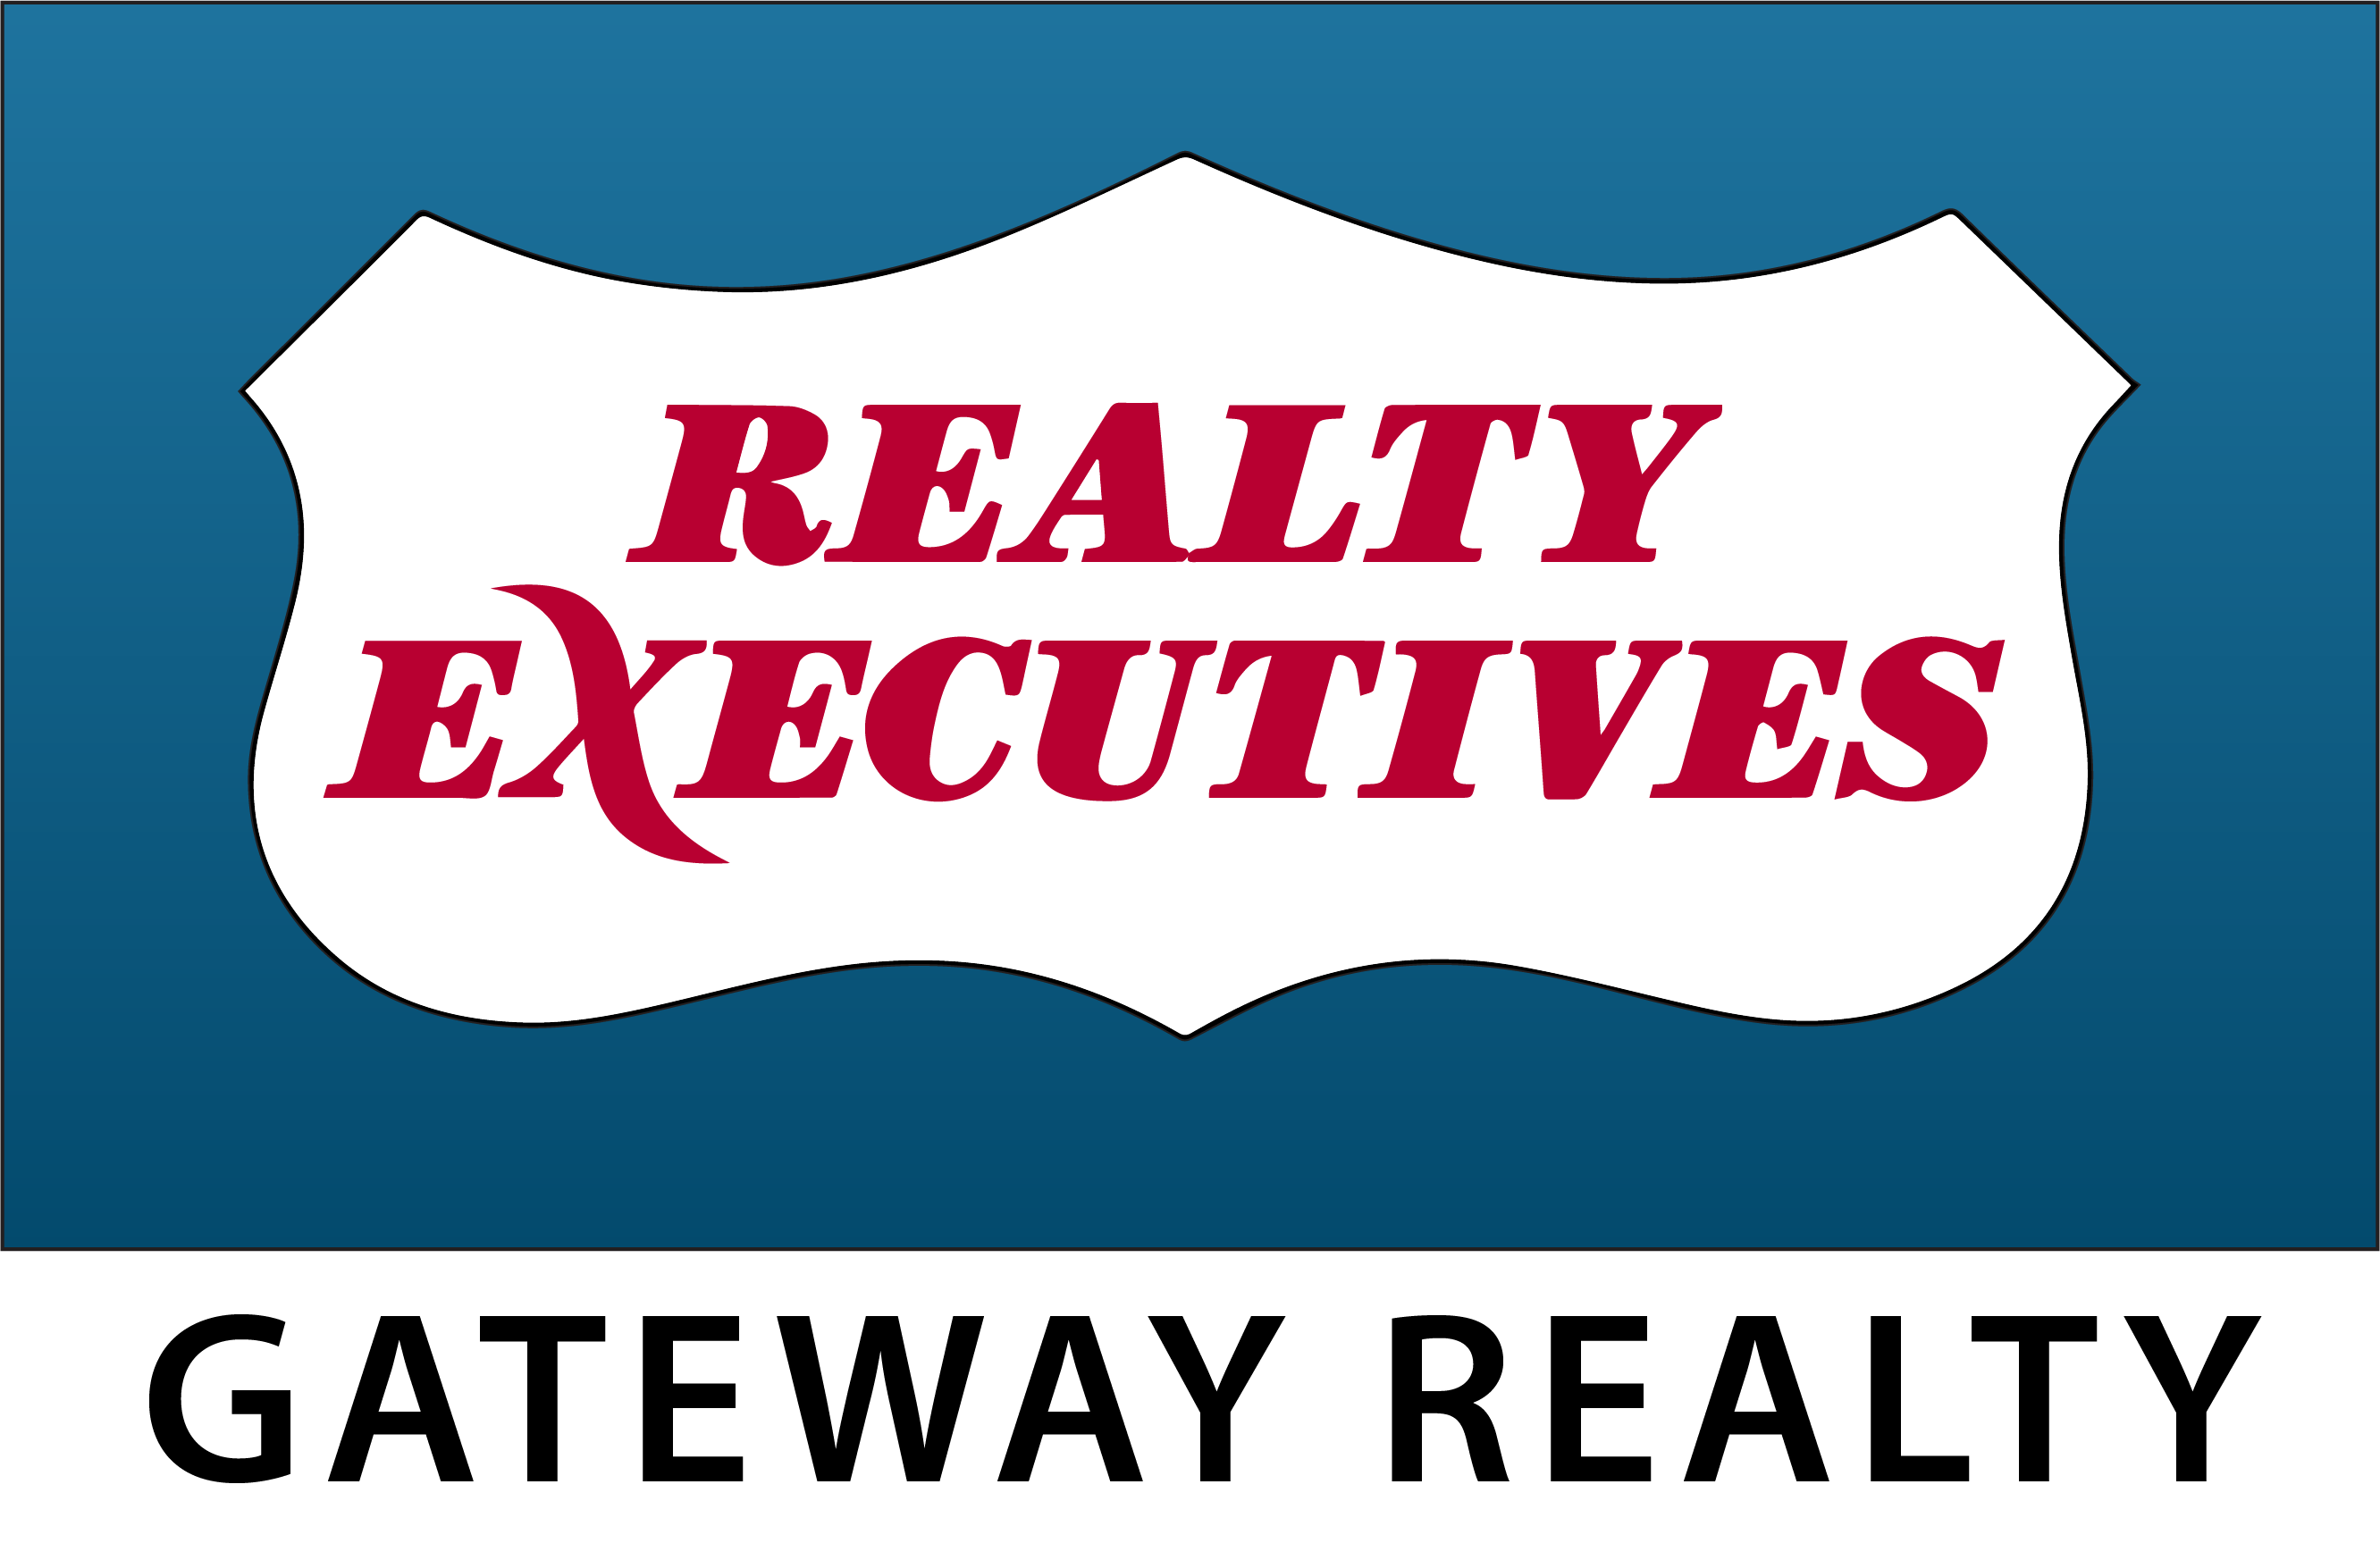 Realty Executives Gateway Reatly